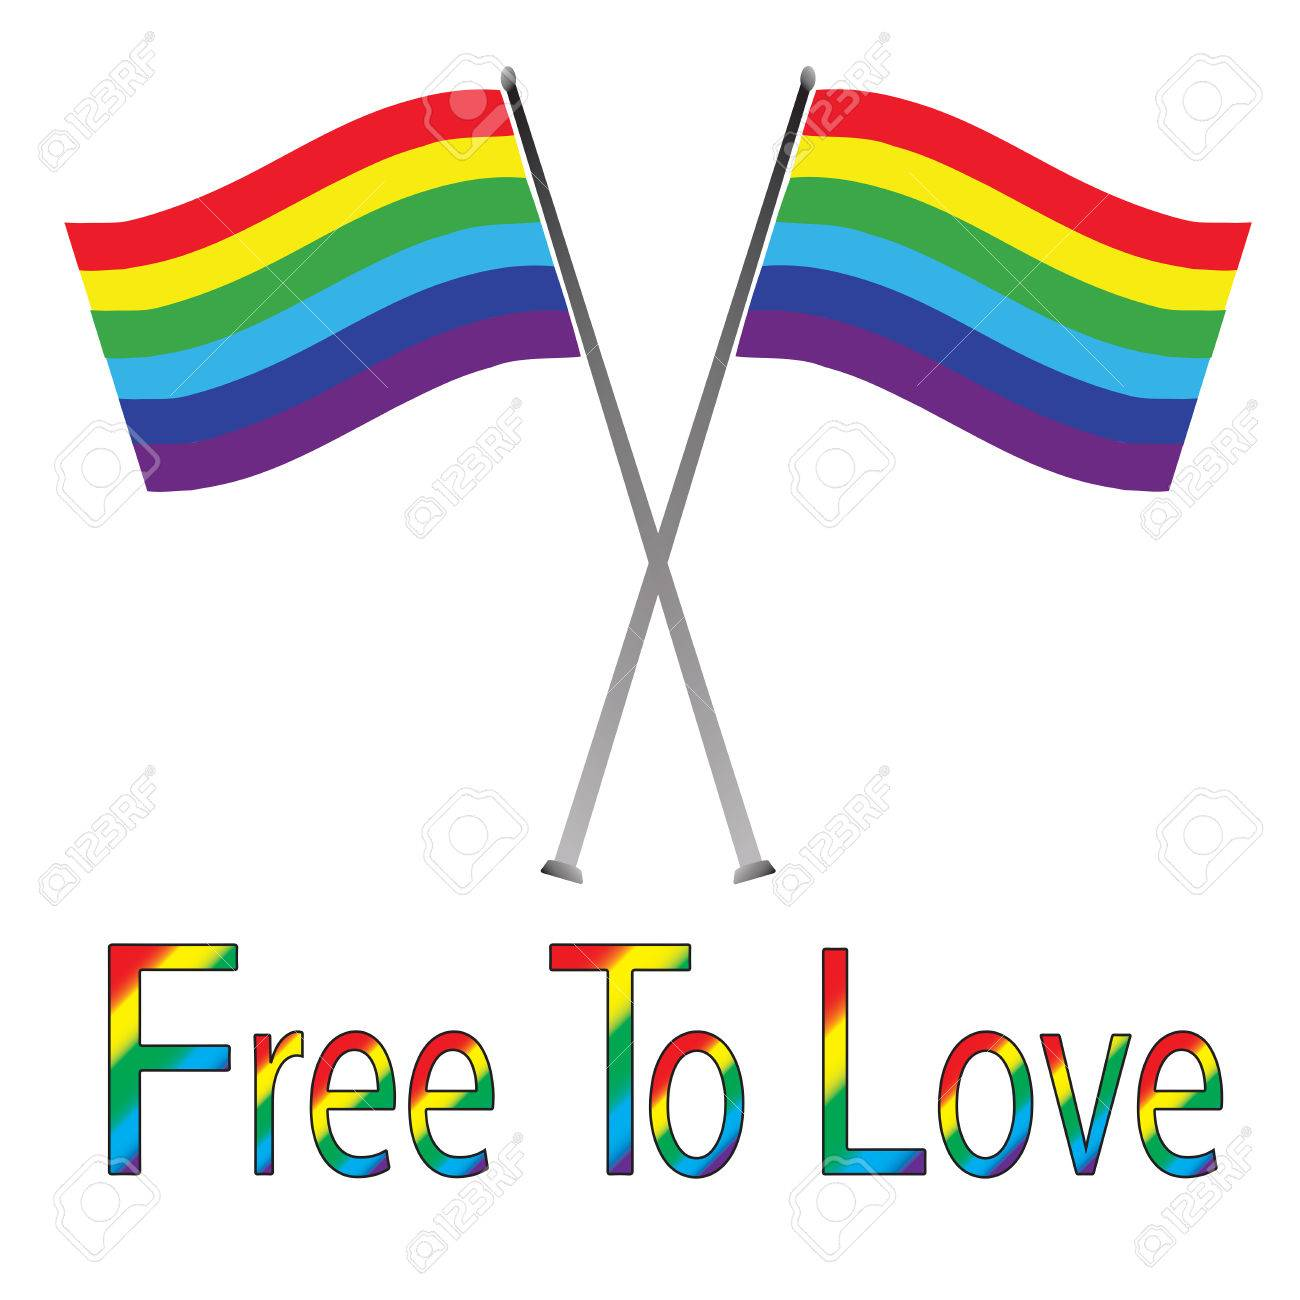 Image result for FREE IMAGES OF PRIDE